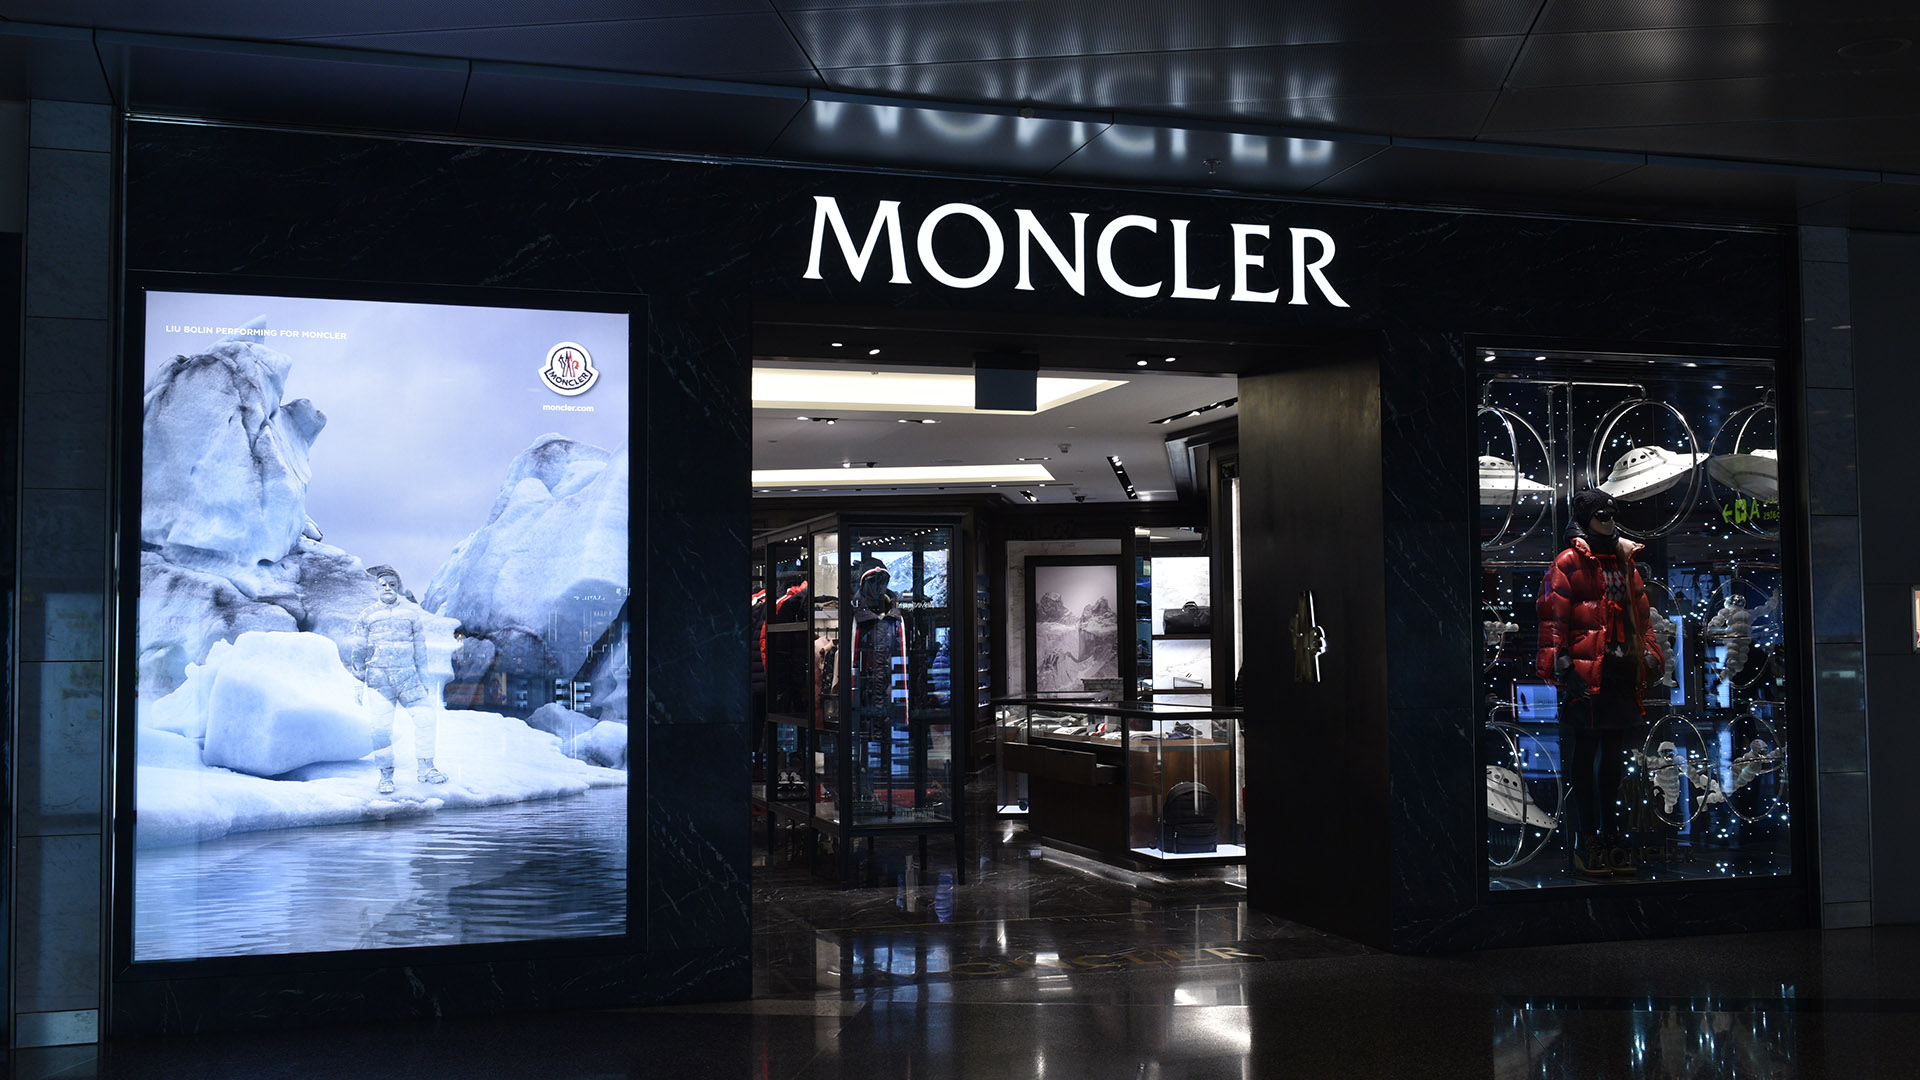 Moncler Spaceman Window at Hamad International Airport - fabricated and installed by ME Visual, Qatar. This display uses Fiber-optic lights.